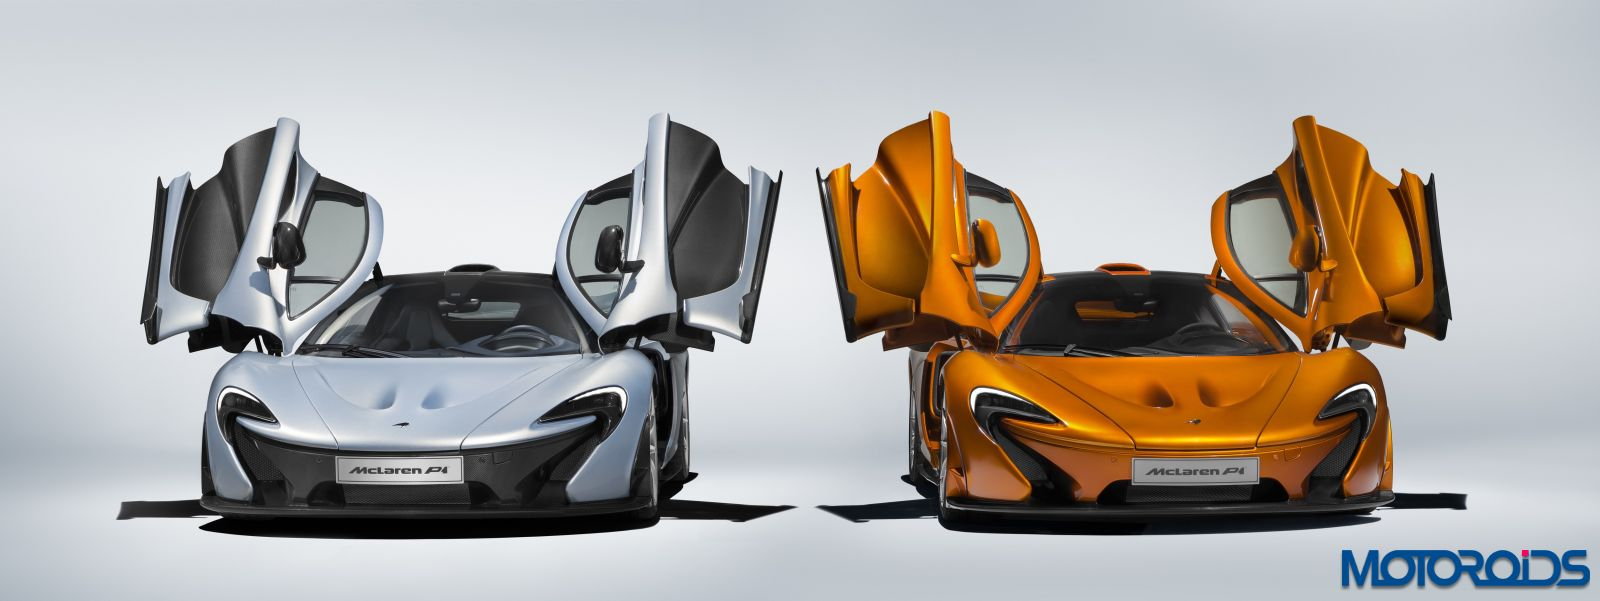 mclaren-brings-the-curtain-down-on-the-p1-photo-gallery_3